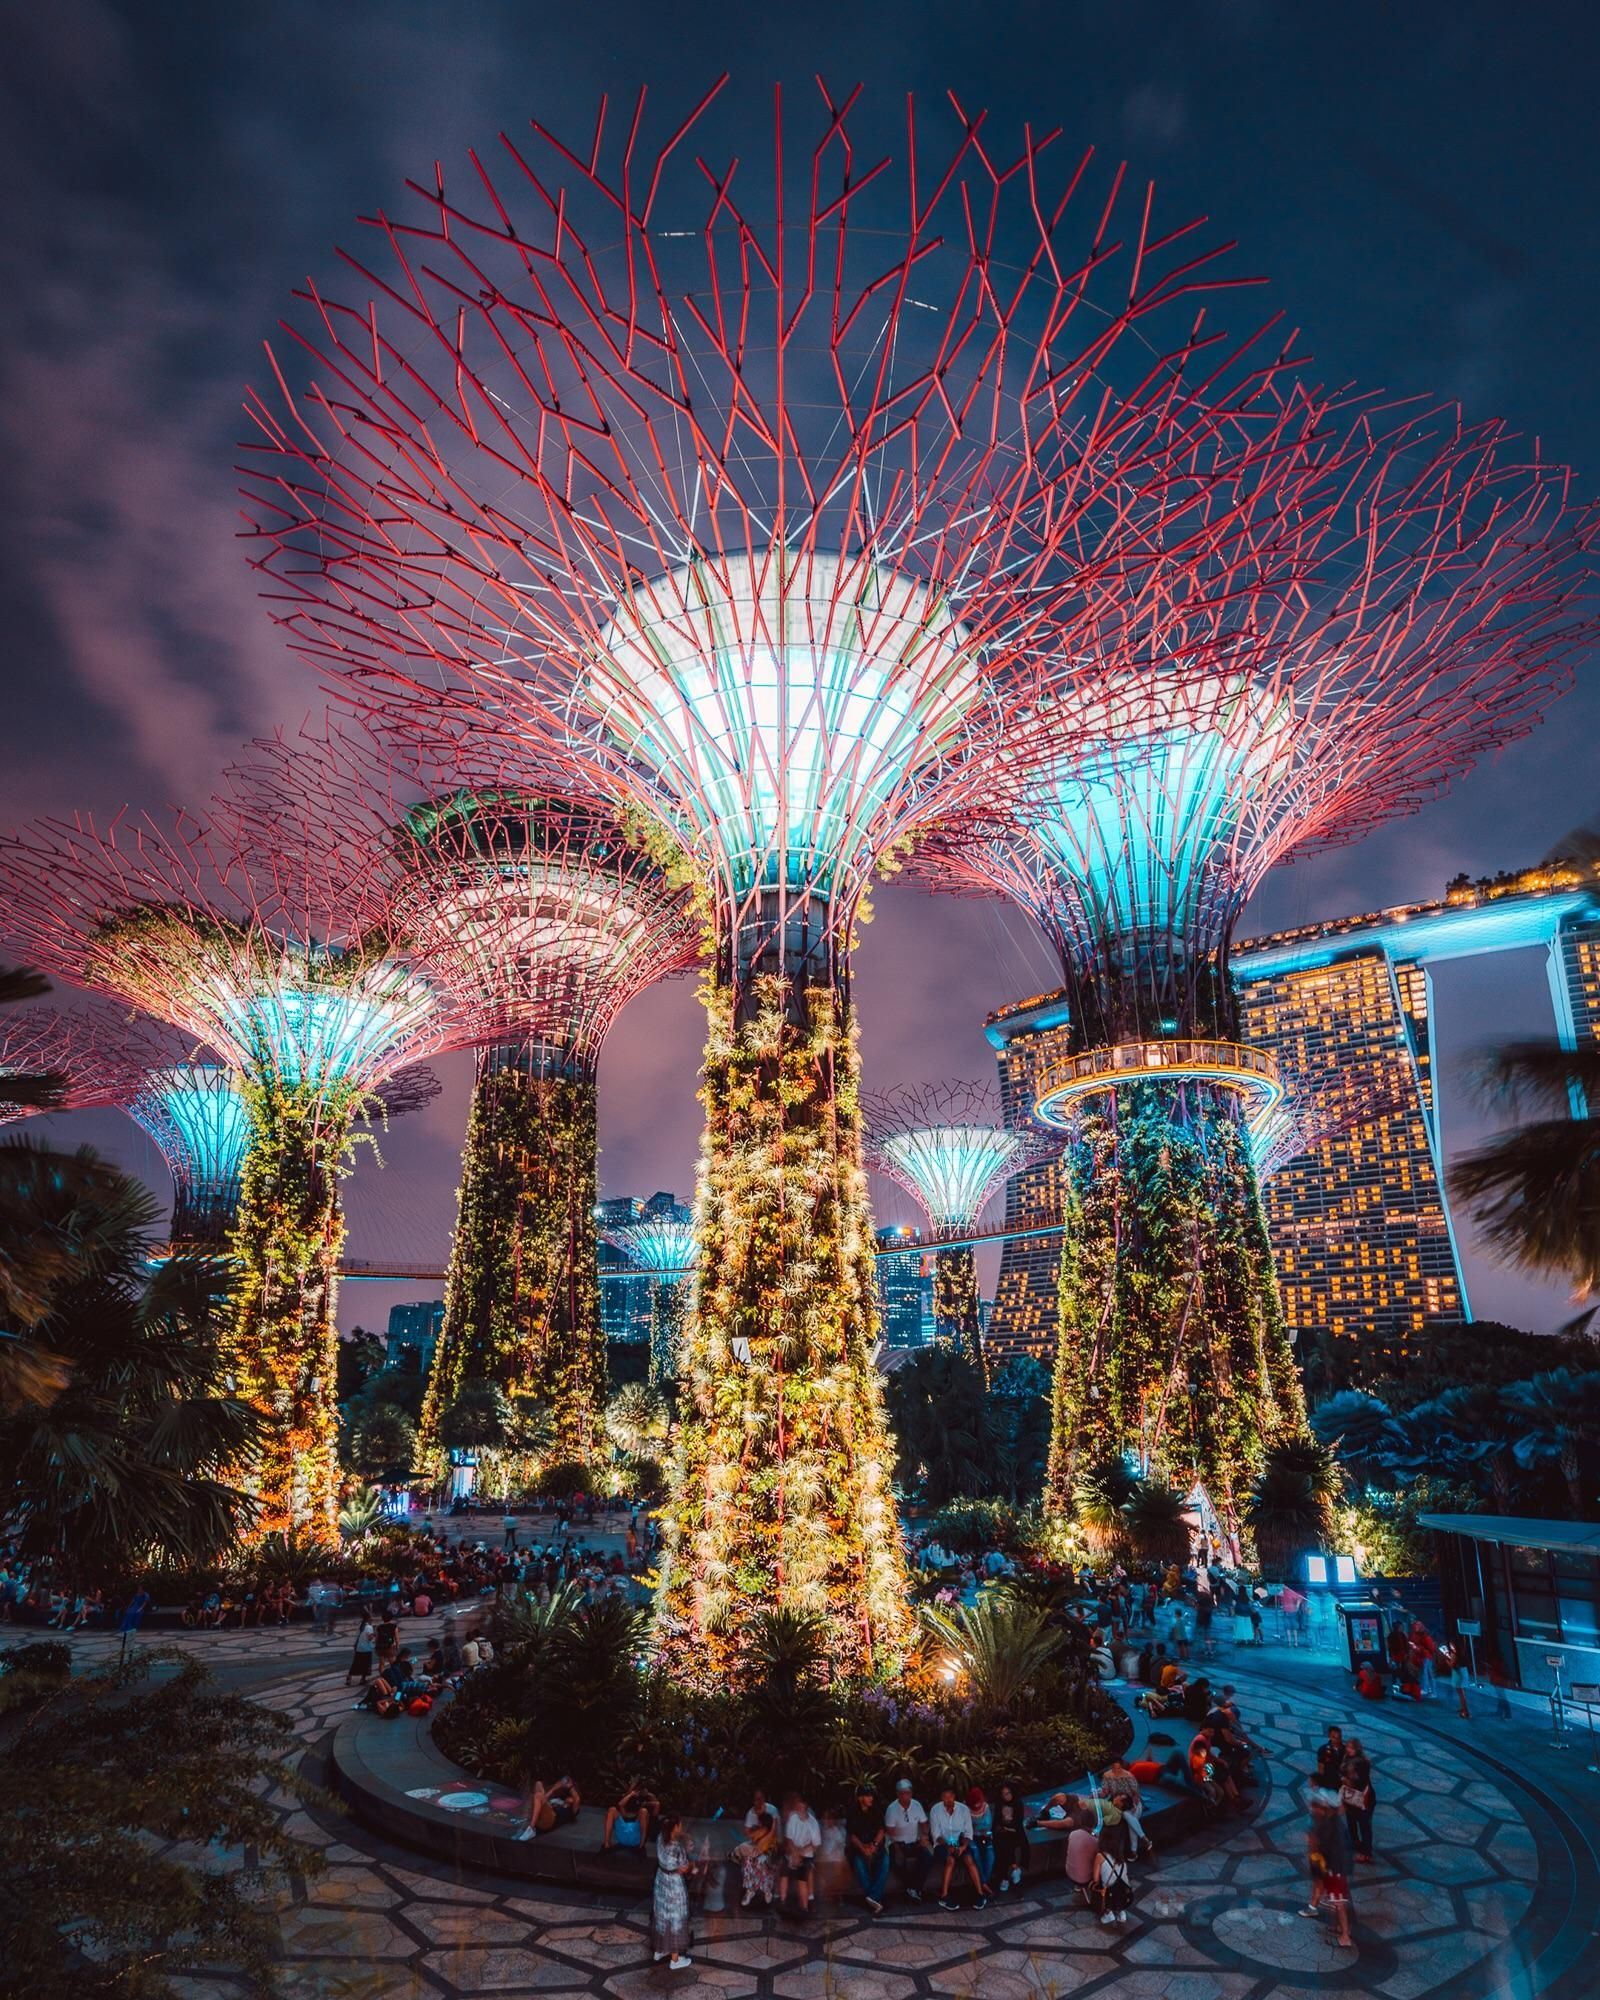 Singapores Super Trees Gardens by the bay, Singapore